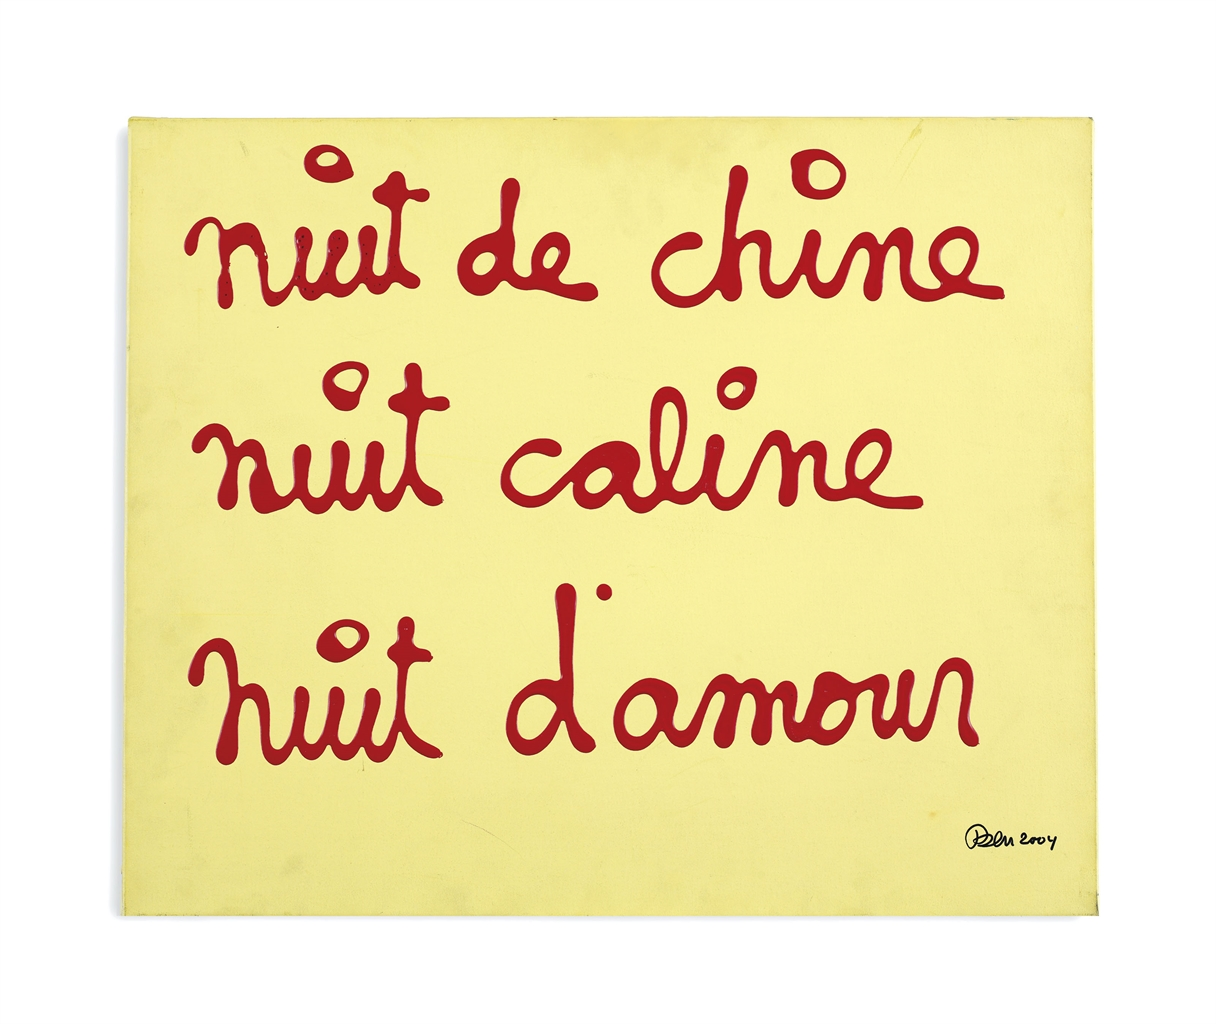 Ben Vautier-Nuit De Chine, Nuit Caline, Nuit Damour (Chinese Night, Affectionate Night, Night Of Love)-2004